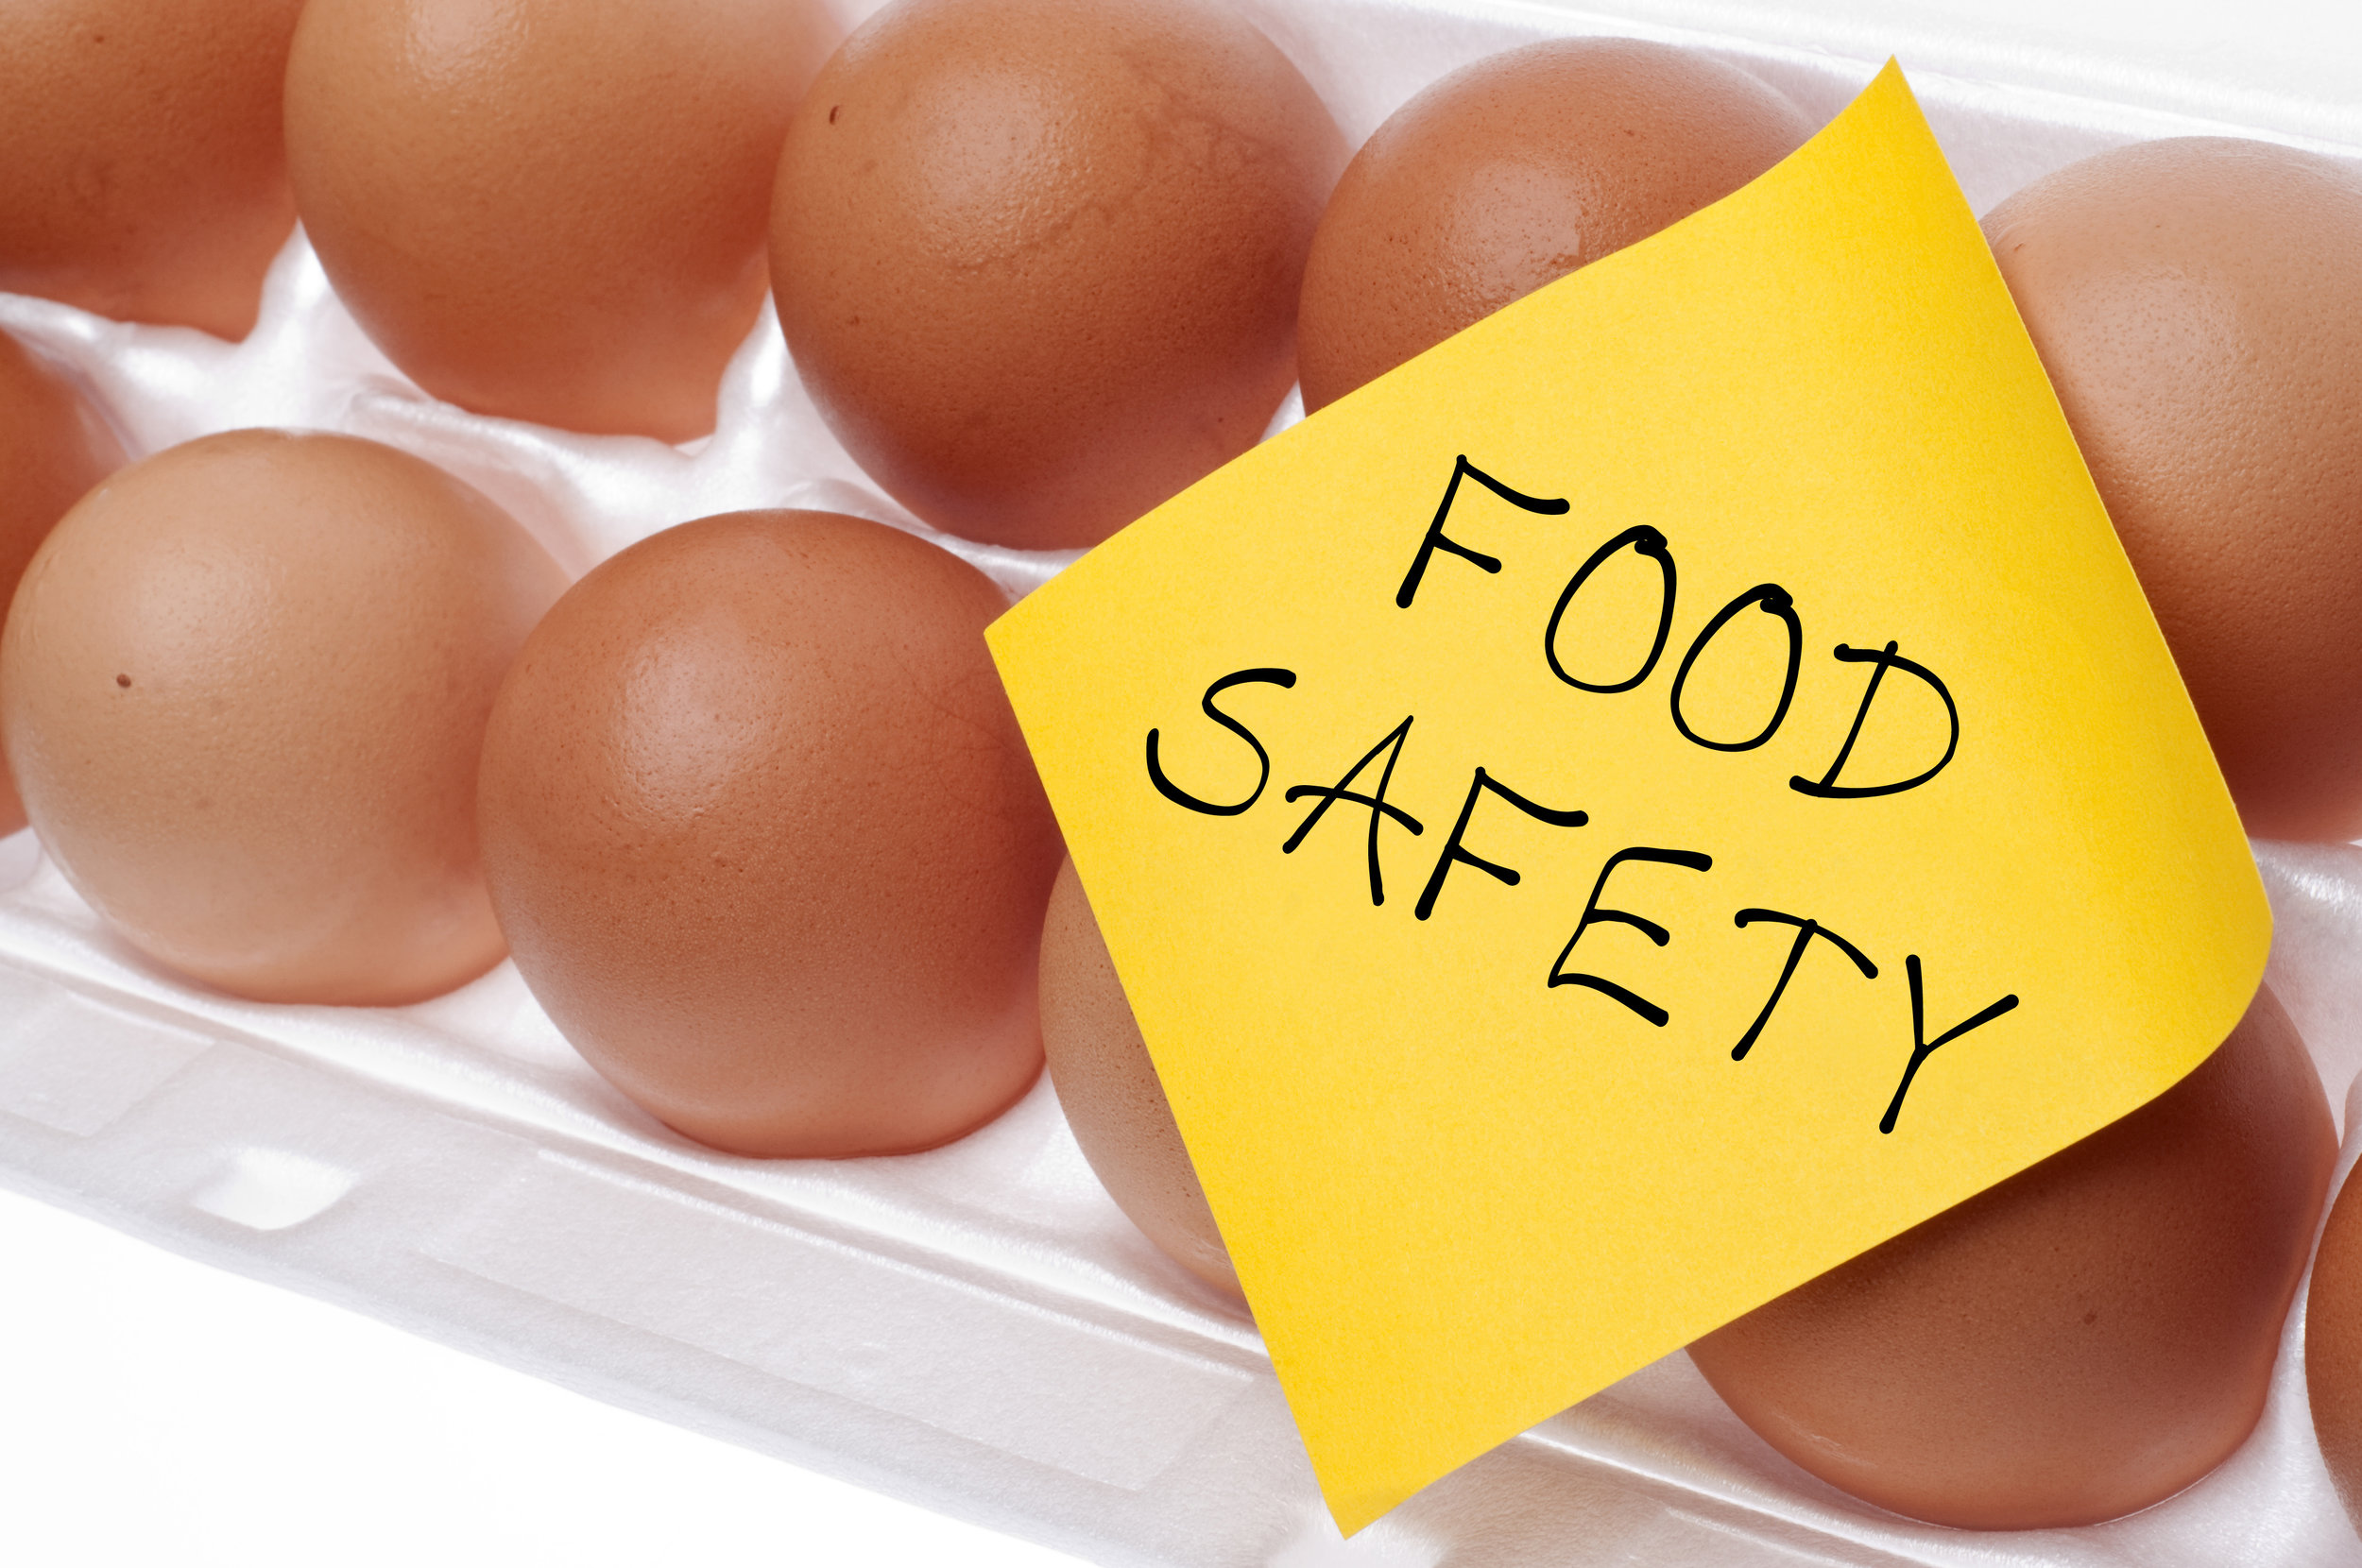 Food Logistics: A Focus on Safety